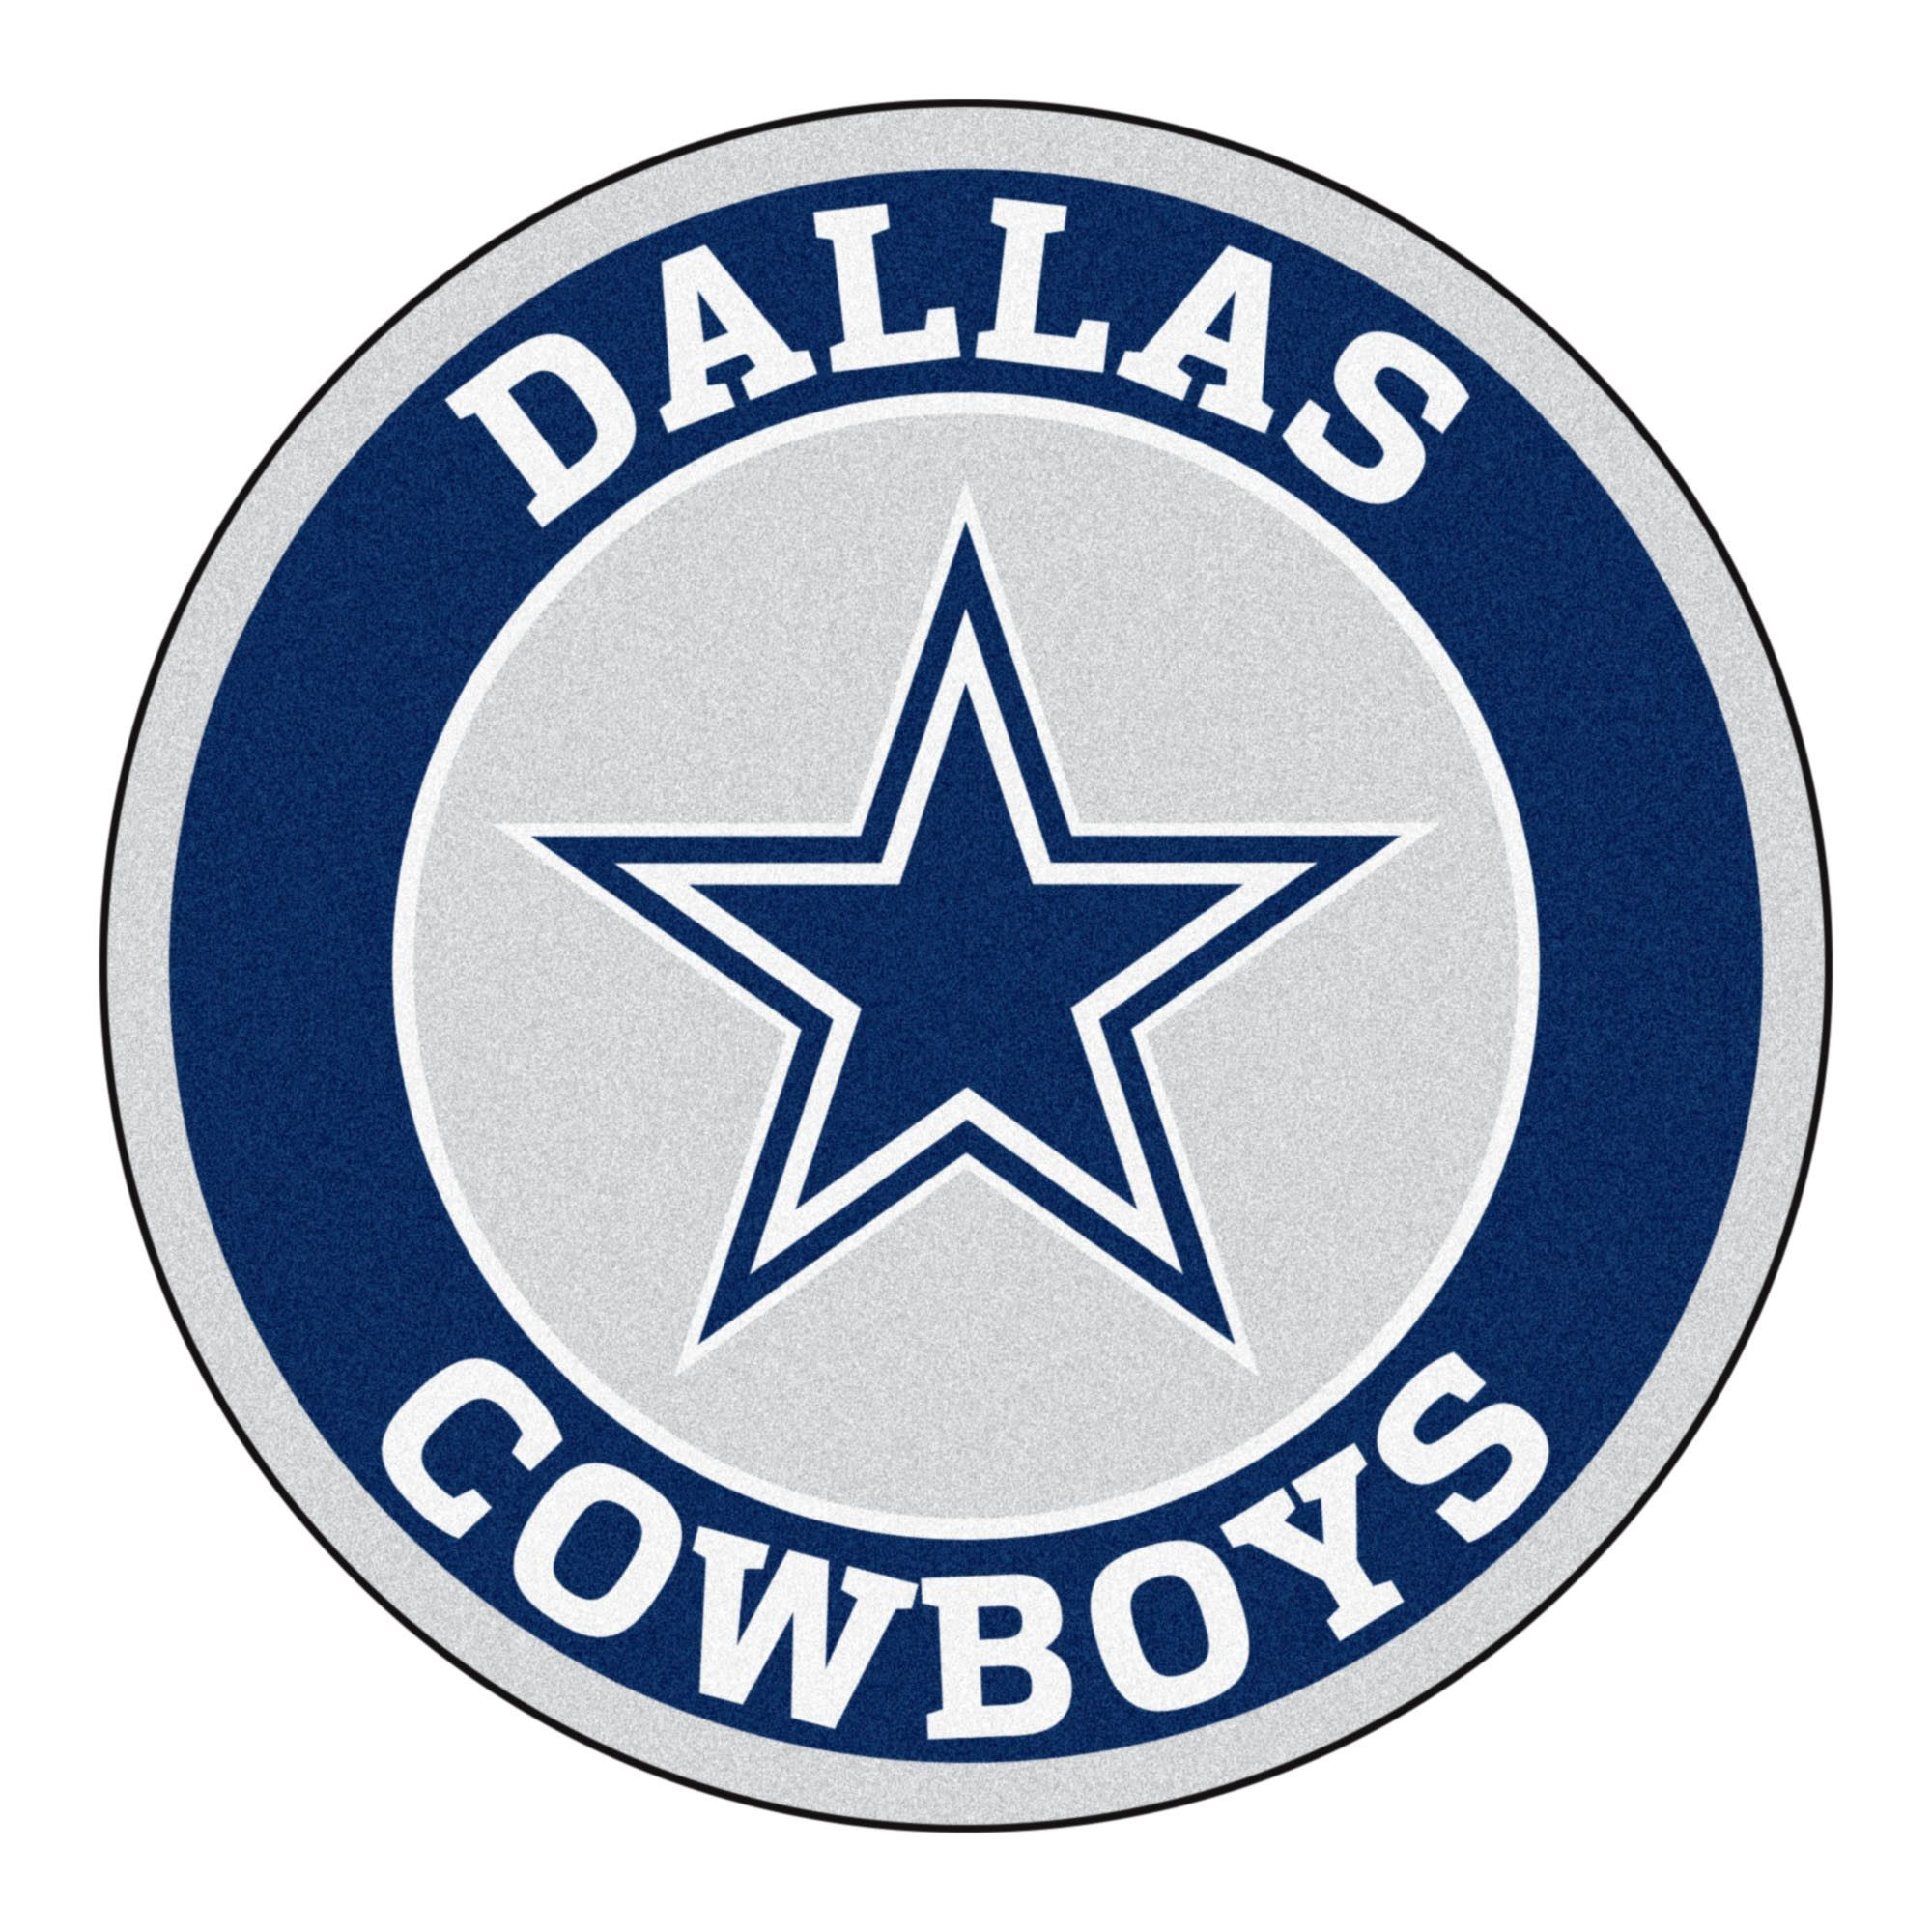 Dallas Cowboys Logo - For all those NFL fans out there, these 27